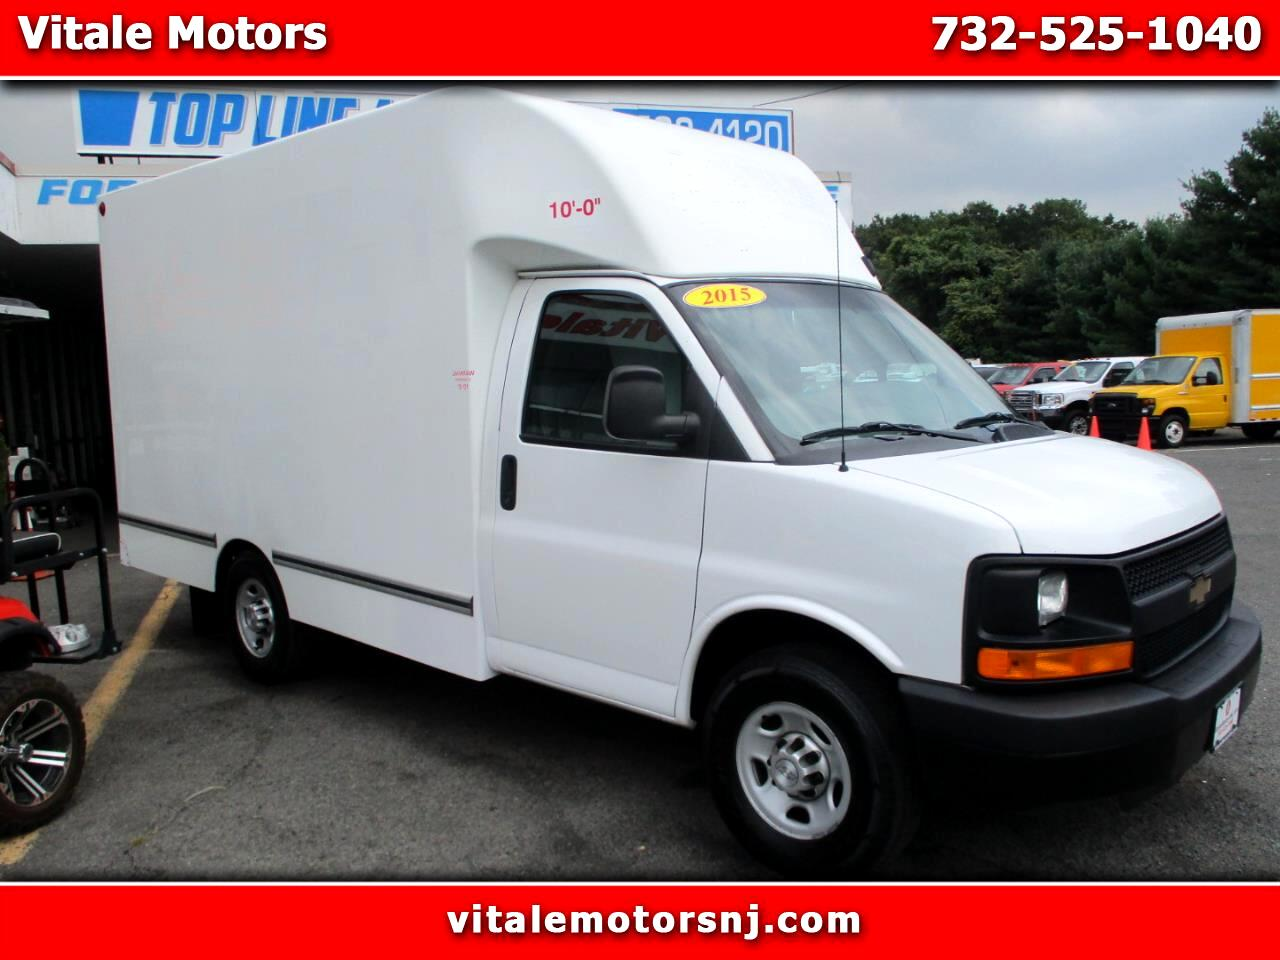 2015 Chevrolet Express G3500 12' CUBE VAN, CUT AWAY, BOX TRUCK